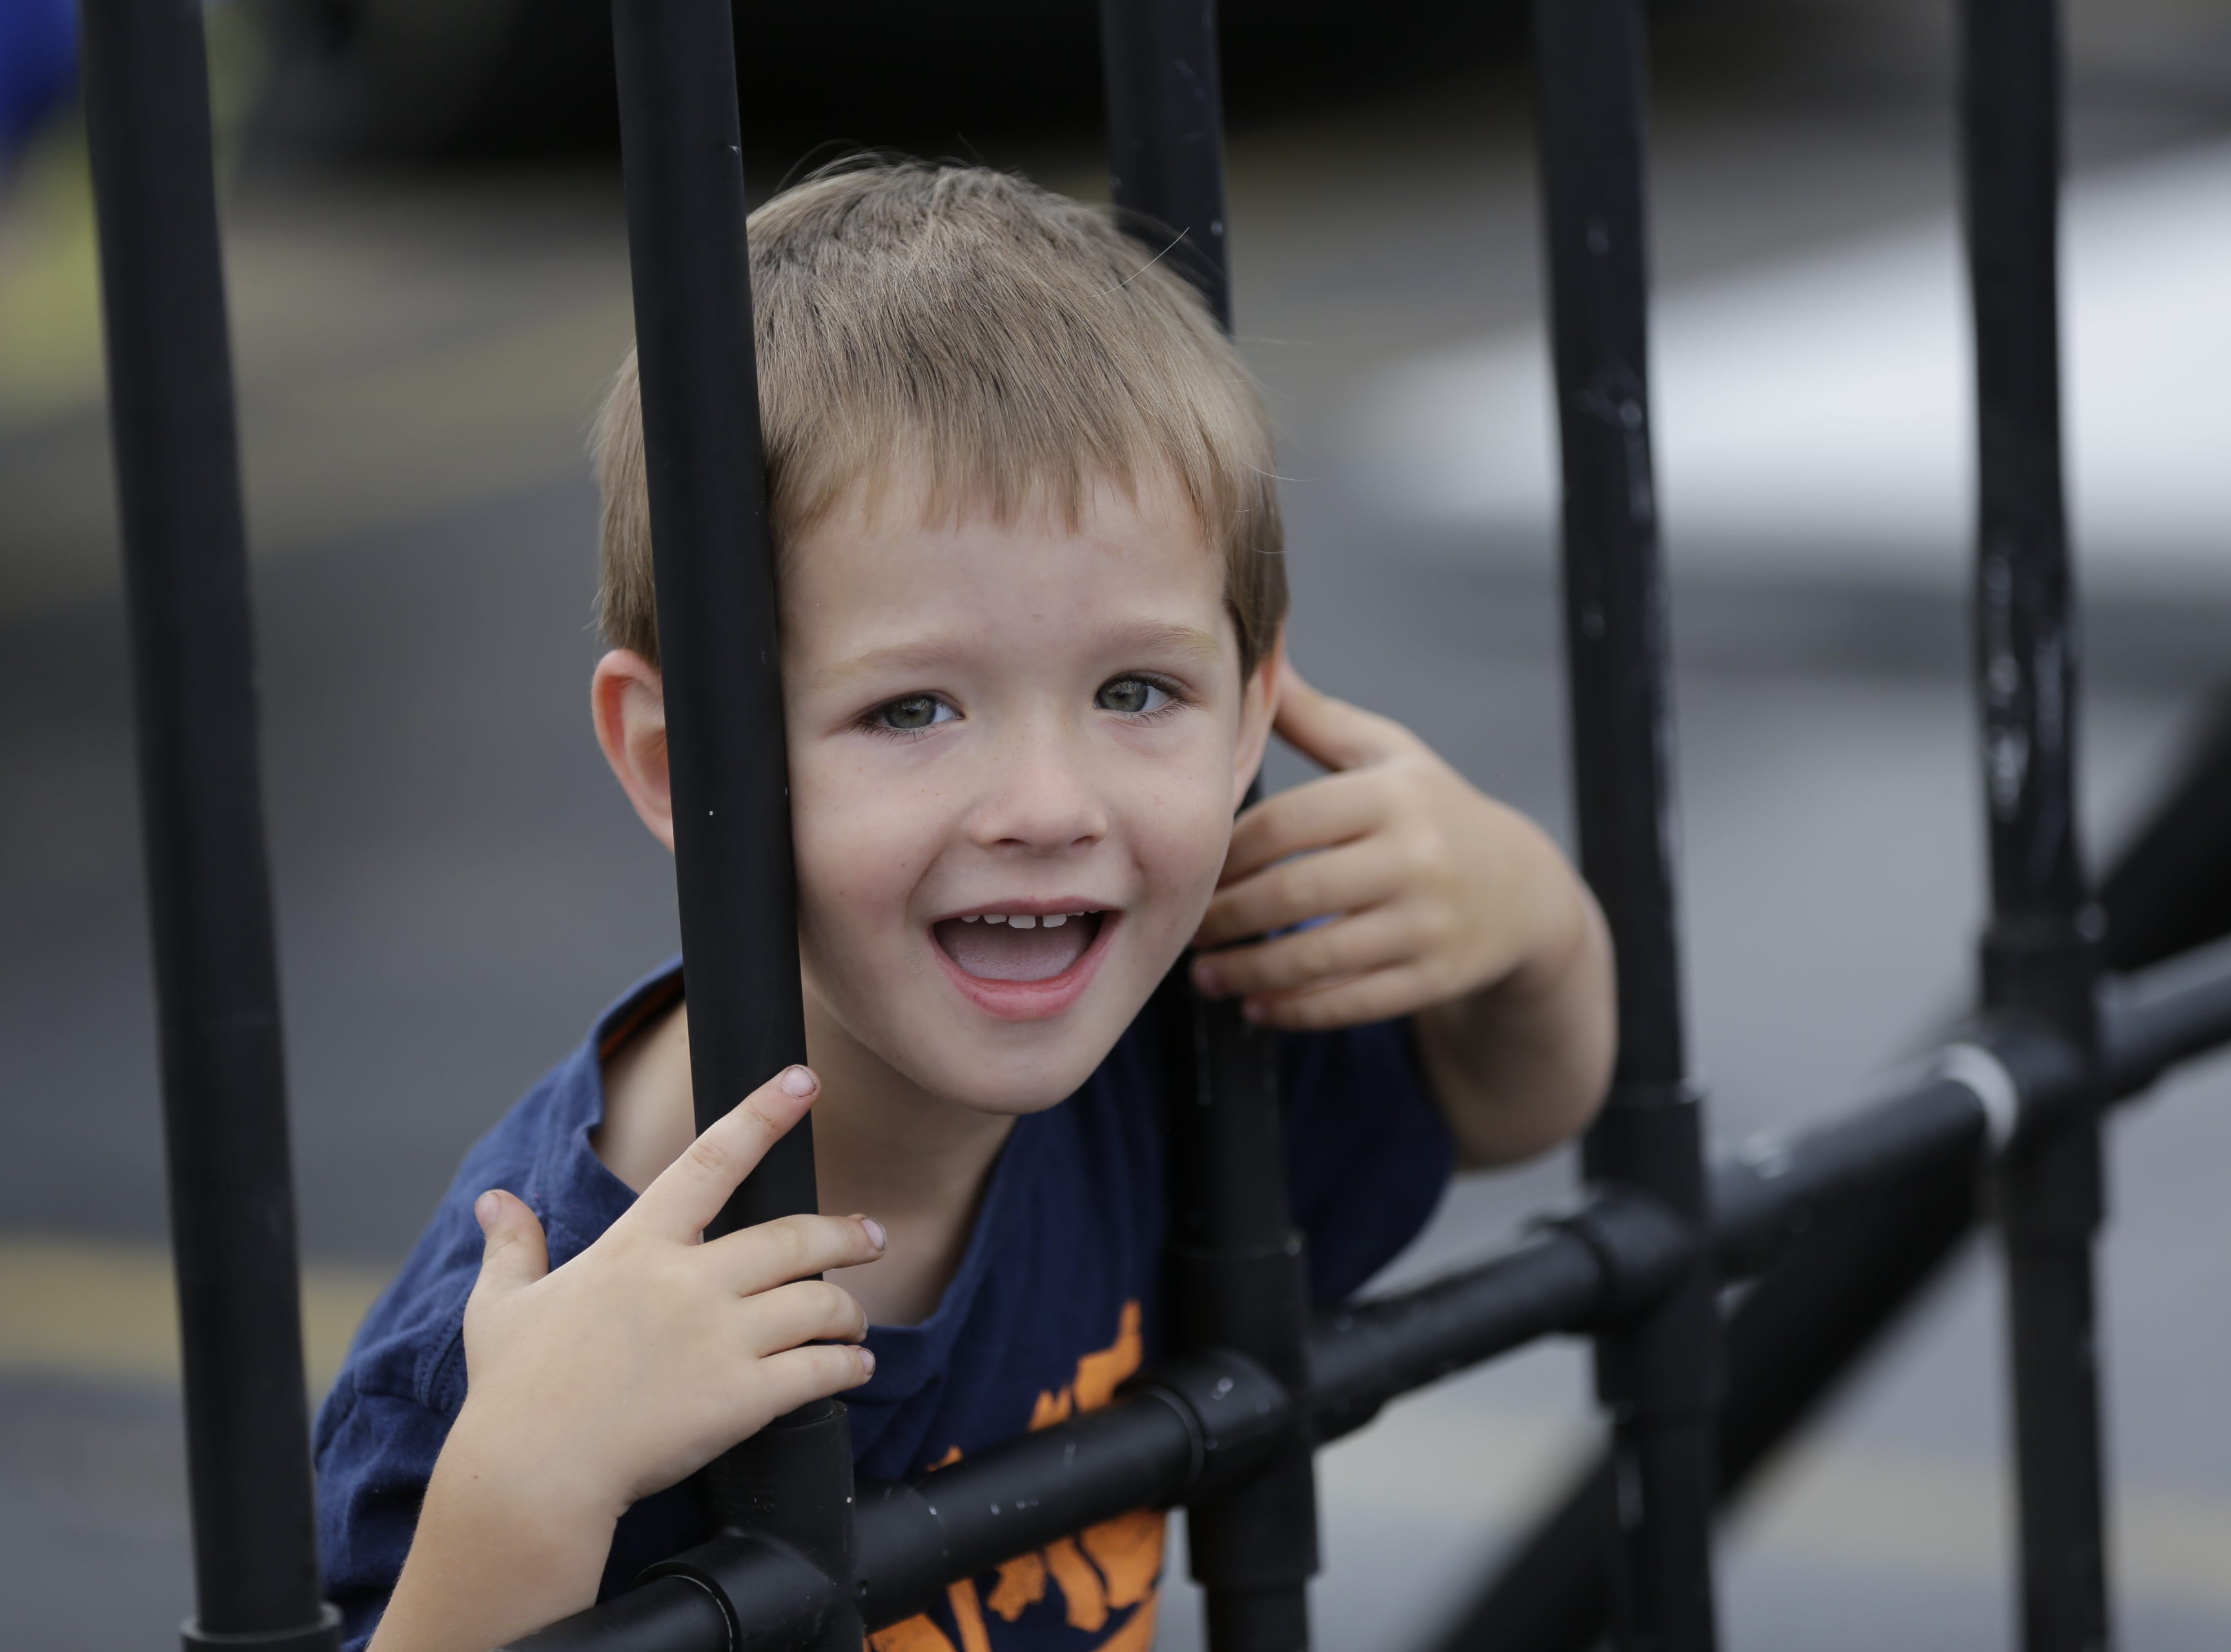 Nolen Pankowski, 3, pretends to be locked up behind fake jail cell bars during the National Night Out event put on by the Wisconsin Rapids Police Department in the Crossview Church parking lot in Wisconsin Rapids Tuesday, August 7, 2018.